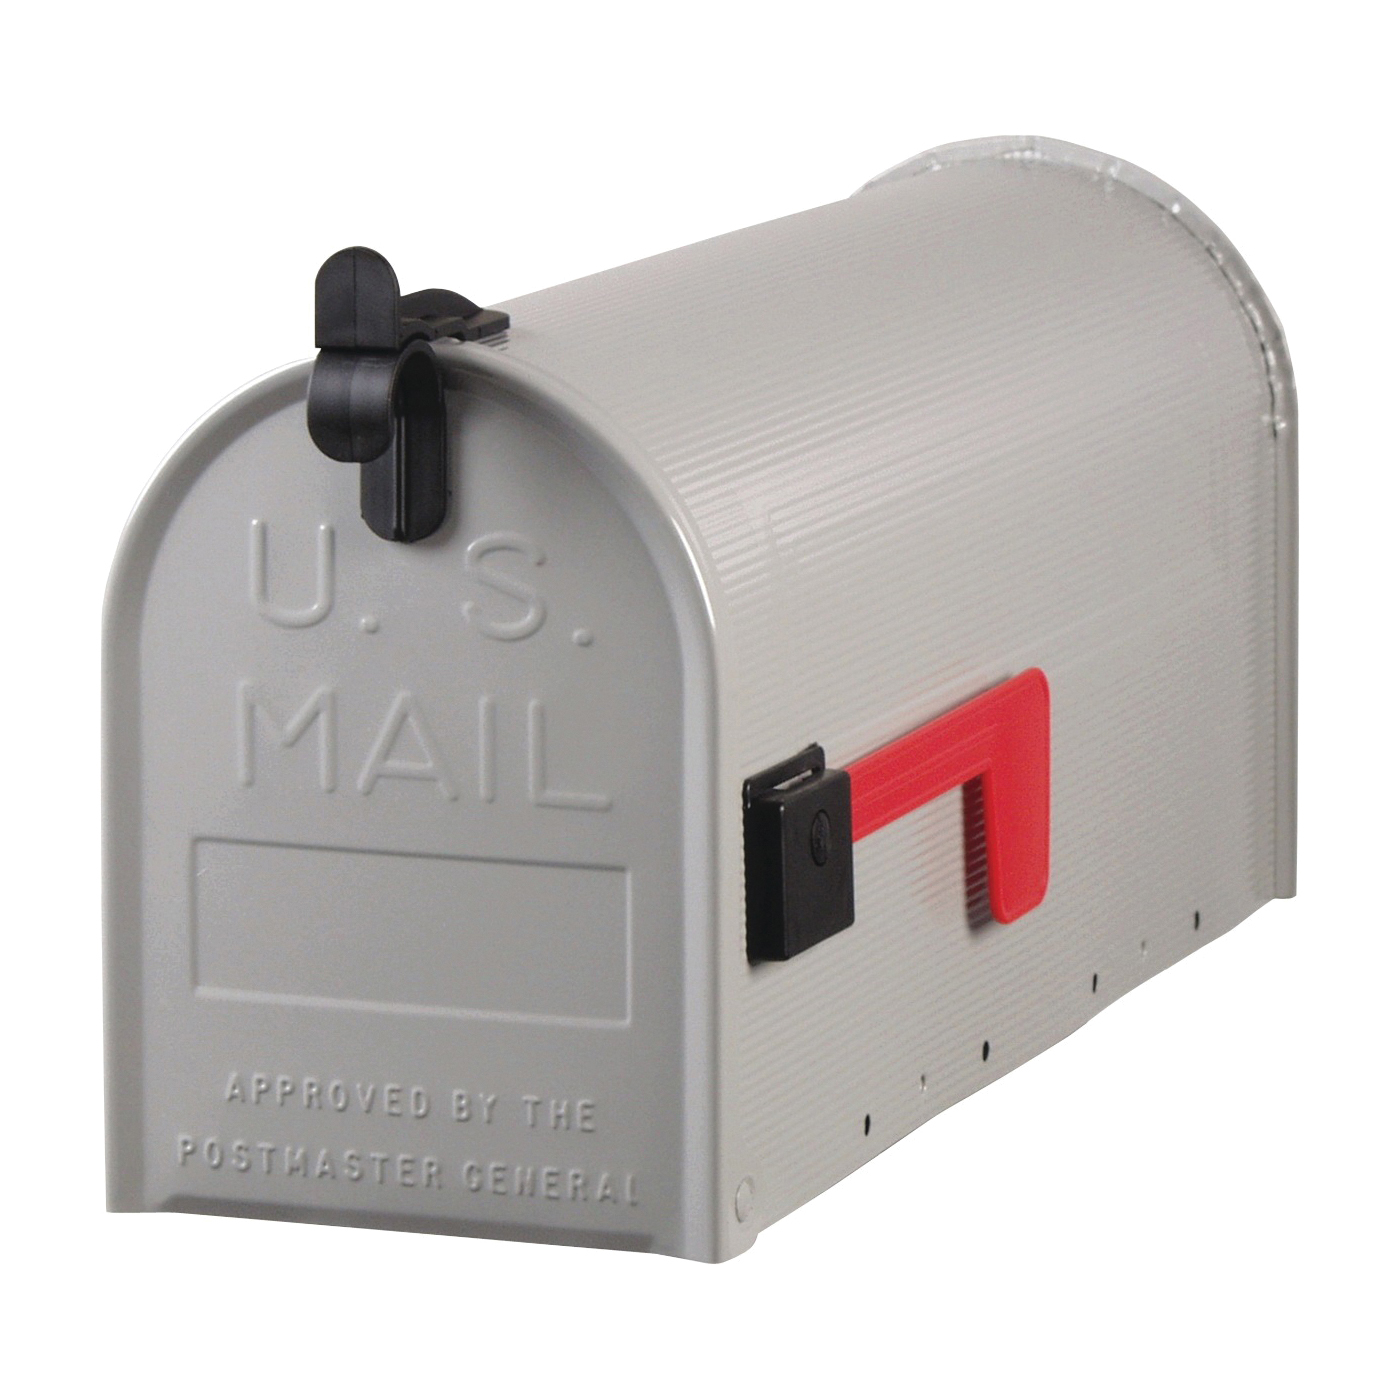 Picture of Gibraltar Mailboxes Grayson ST100000 Rural Mailbox, 800 cu-in Capacity, Galvanized Steel, Powder-Coated, 7 in W